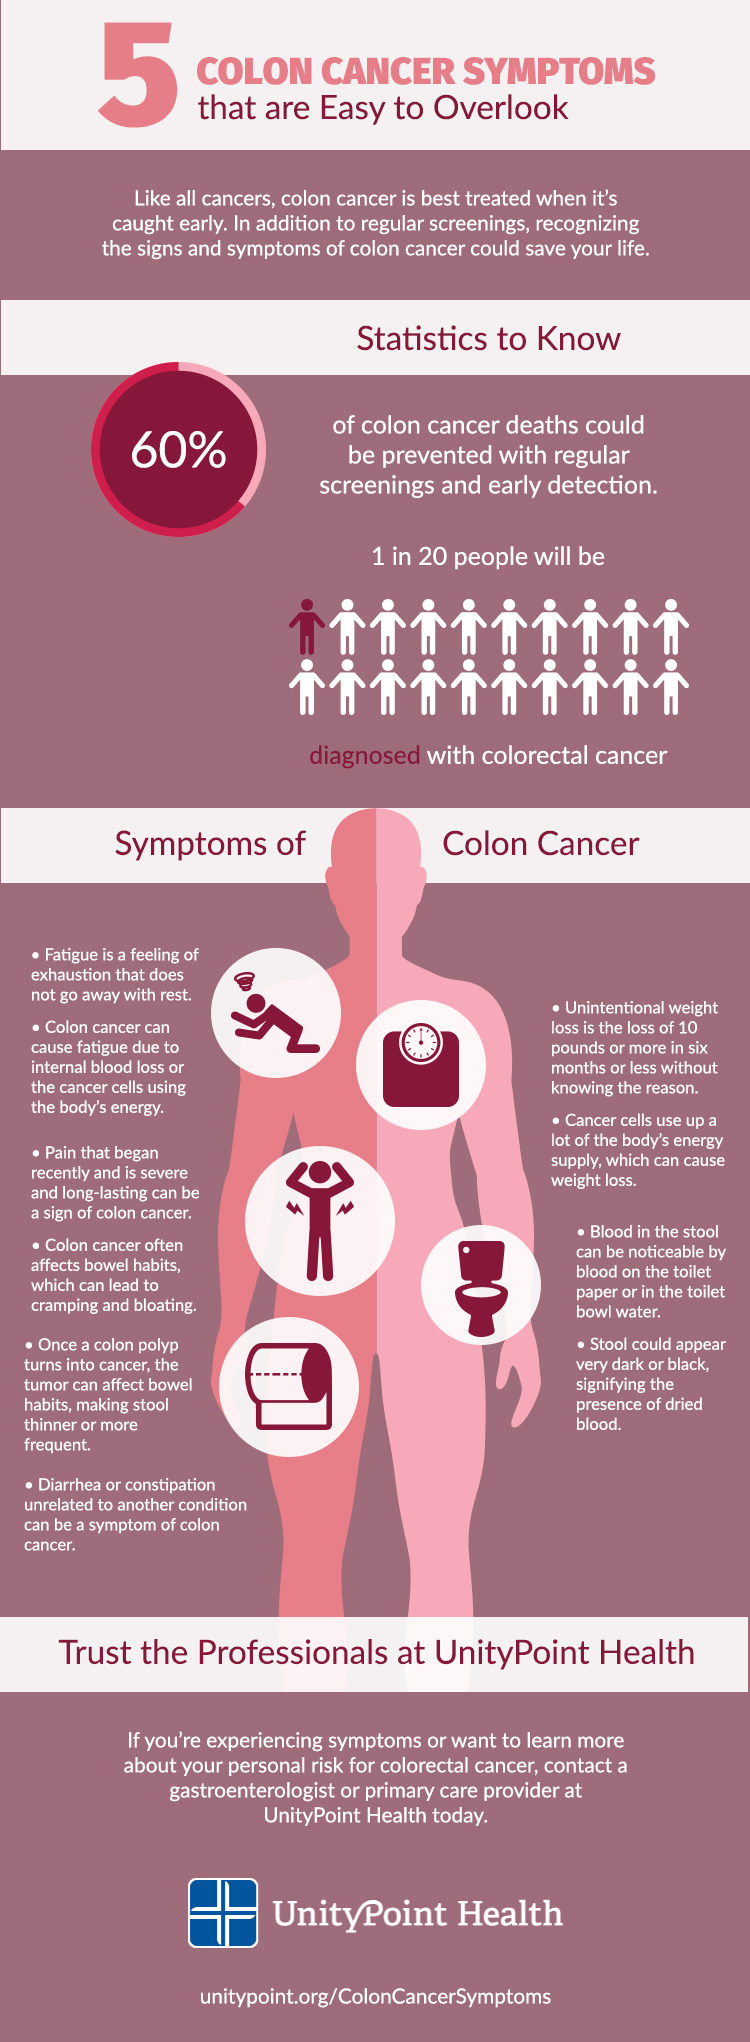 5 Colon Cancer Symptoms that are Easy to Overlook #infographic